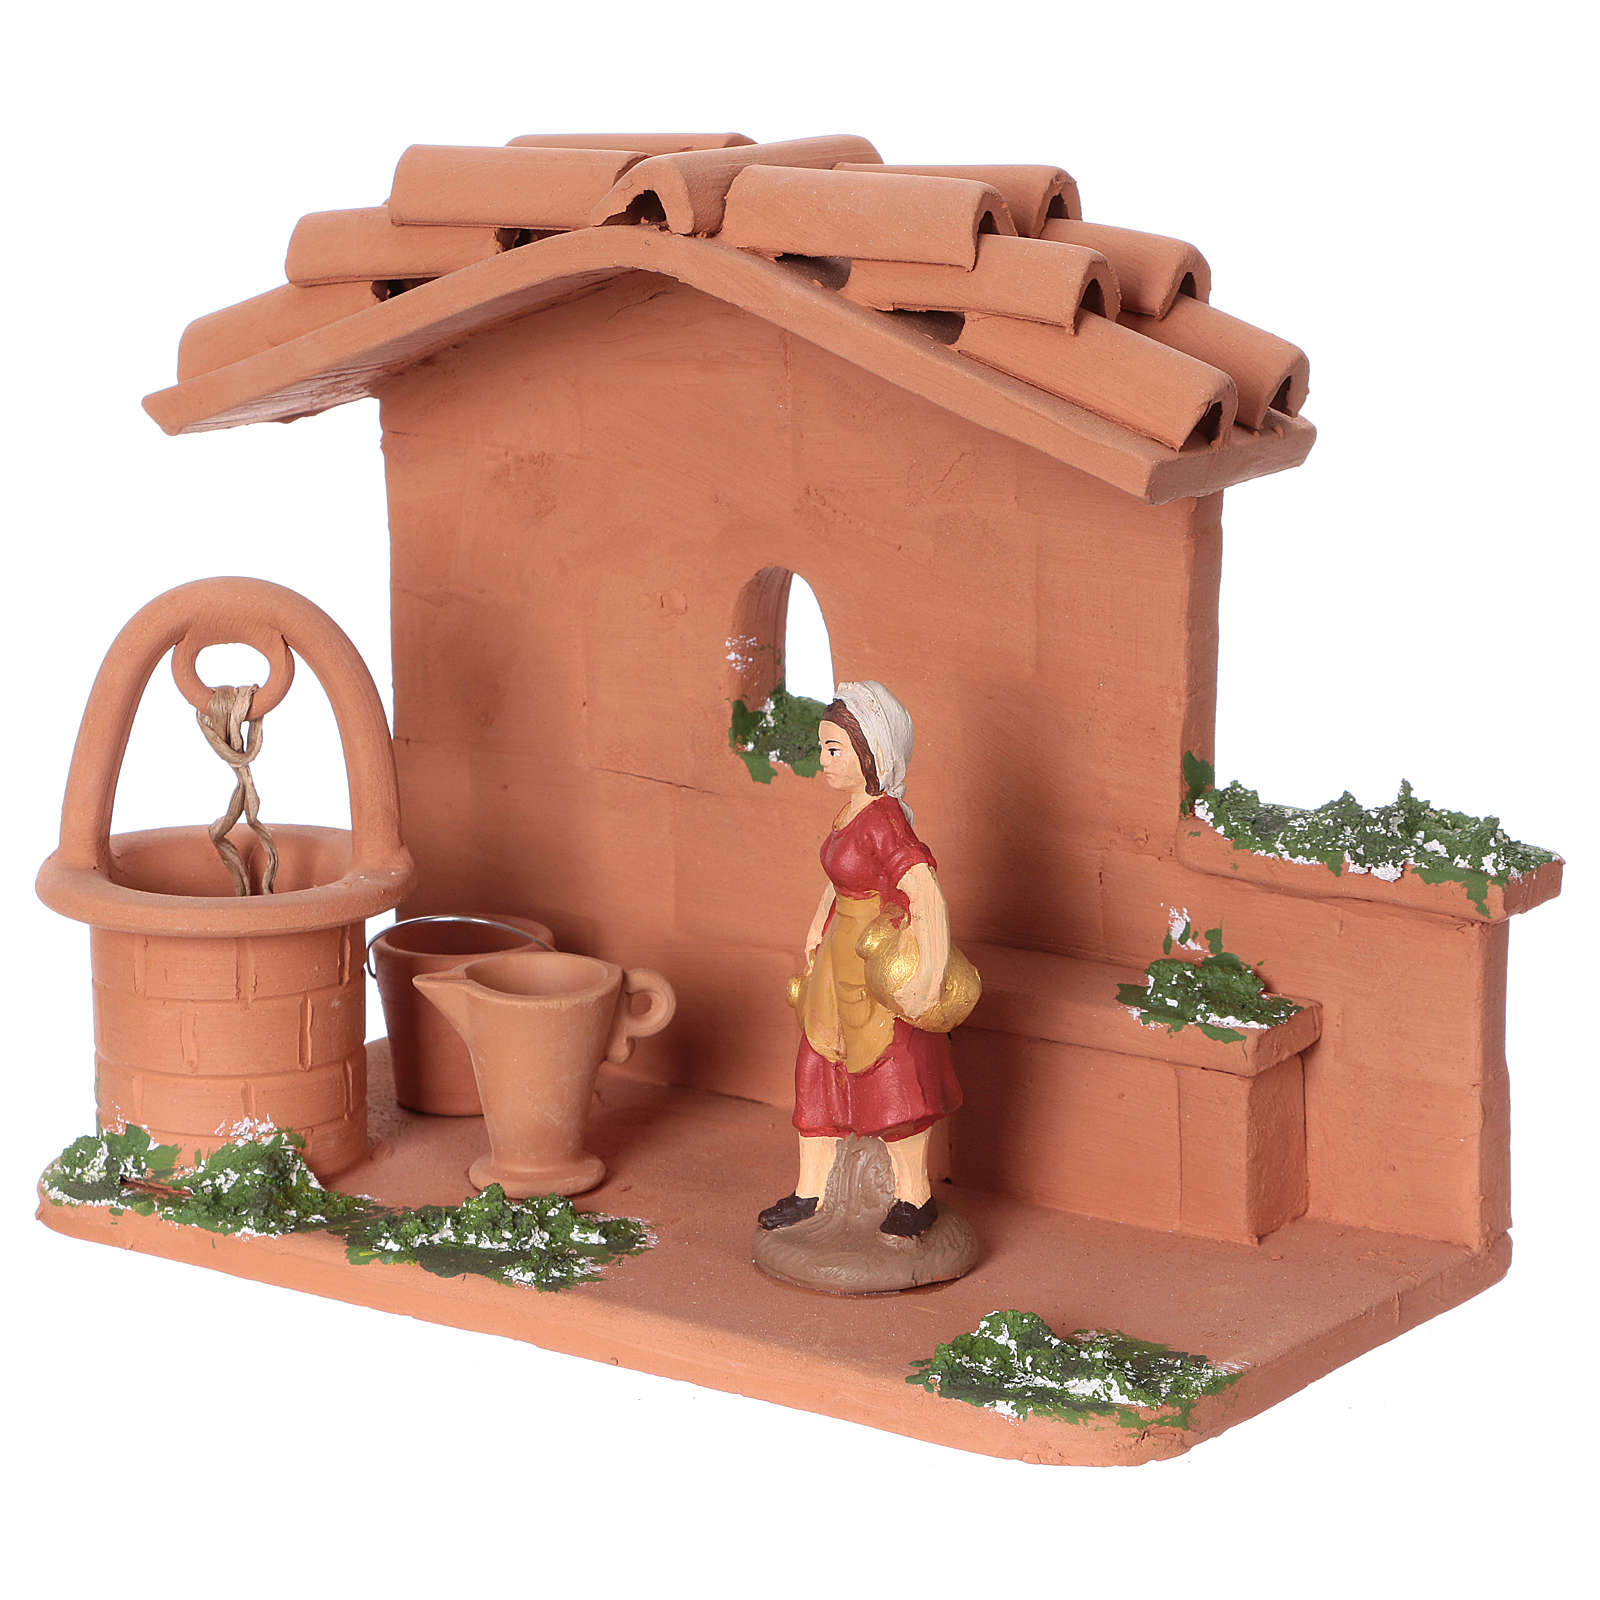 Terracotta woman at the well for Nativity scene 10 cm made in Deruta 4